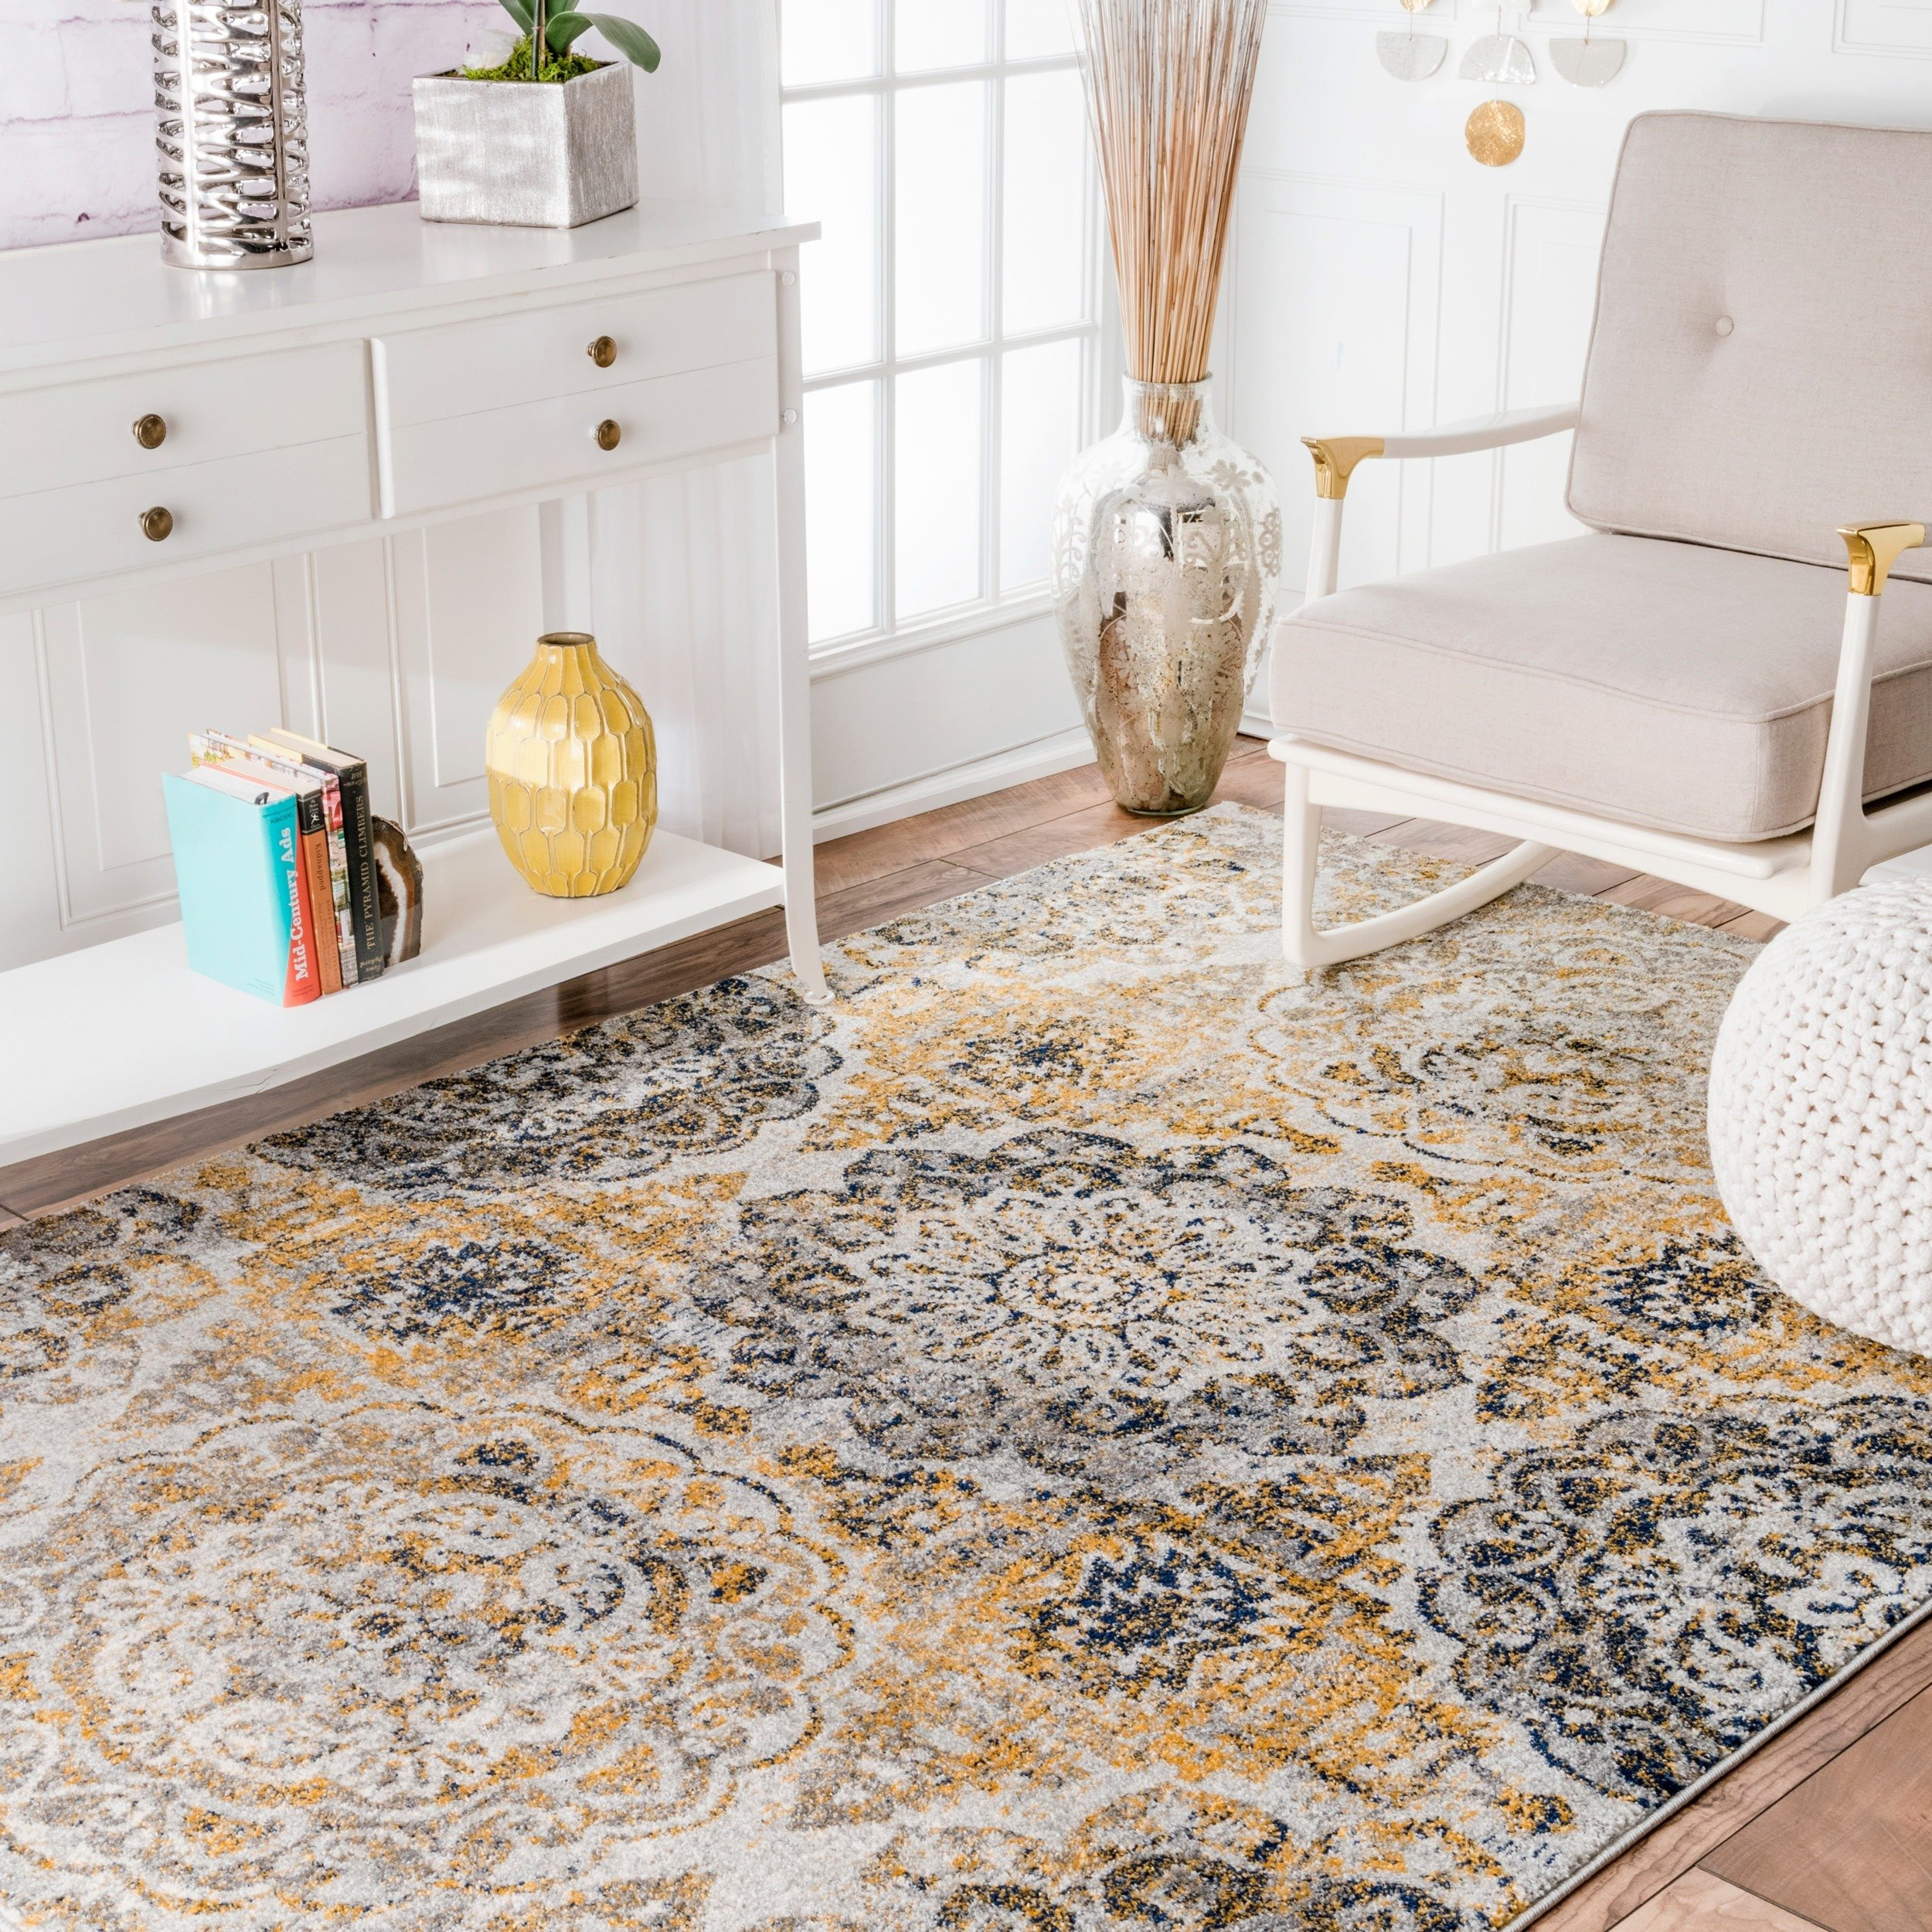 rug types for hardwood floors of shop nuloom transitional damask faded gold rug 8 x 10 free pertaining to shop nuloom transitional damask faded gold rug 8 x 10 free shipping today overstock com 14097015